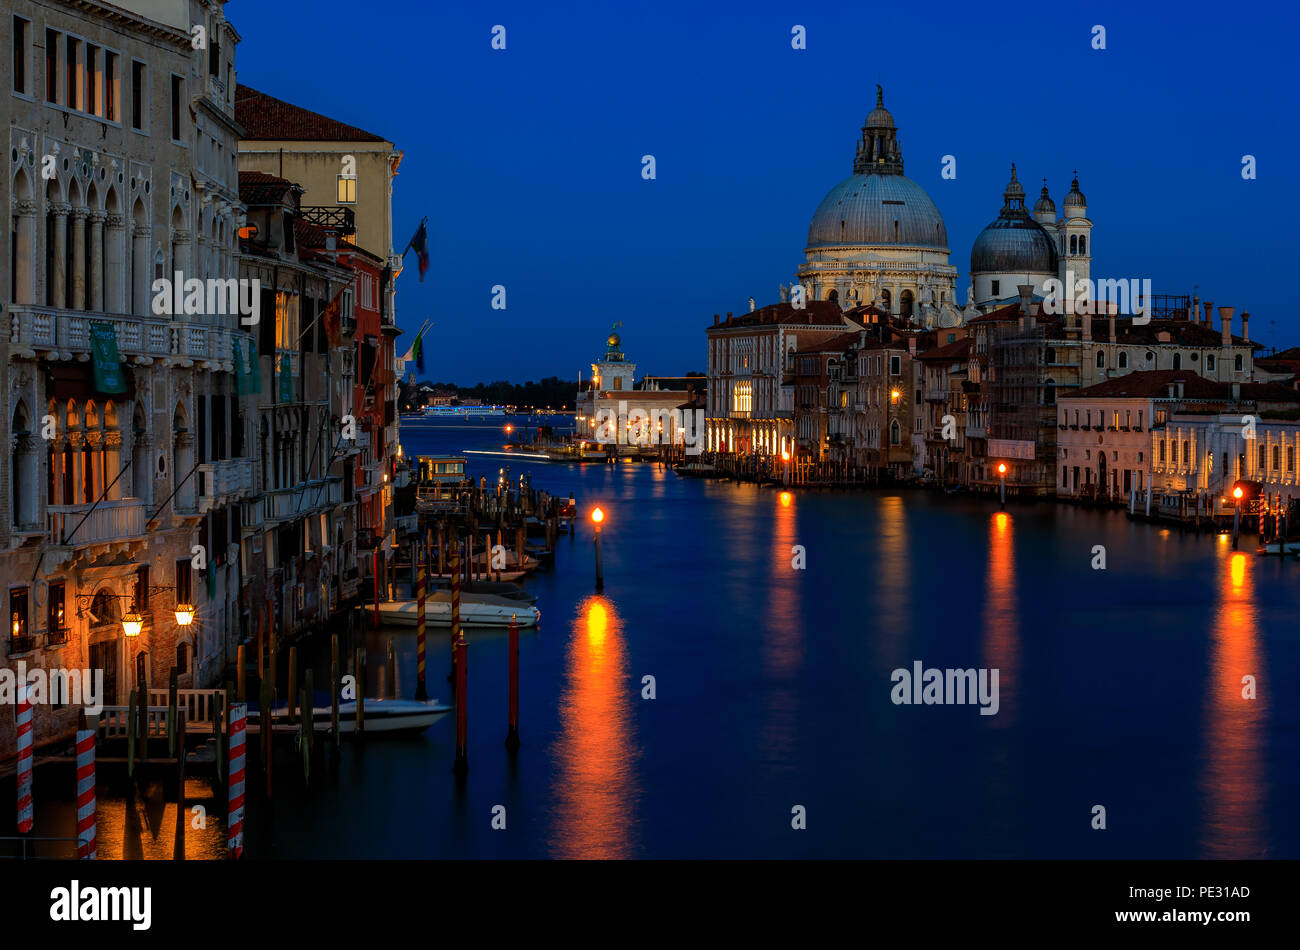 Sunset at the iconic 17th-century Santa Maria di Salute Basilica, view from Academia bridge or Puente de la academia along the Grand Canal in Venice,  Stock Photo